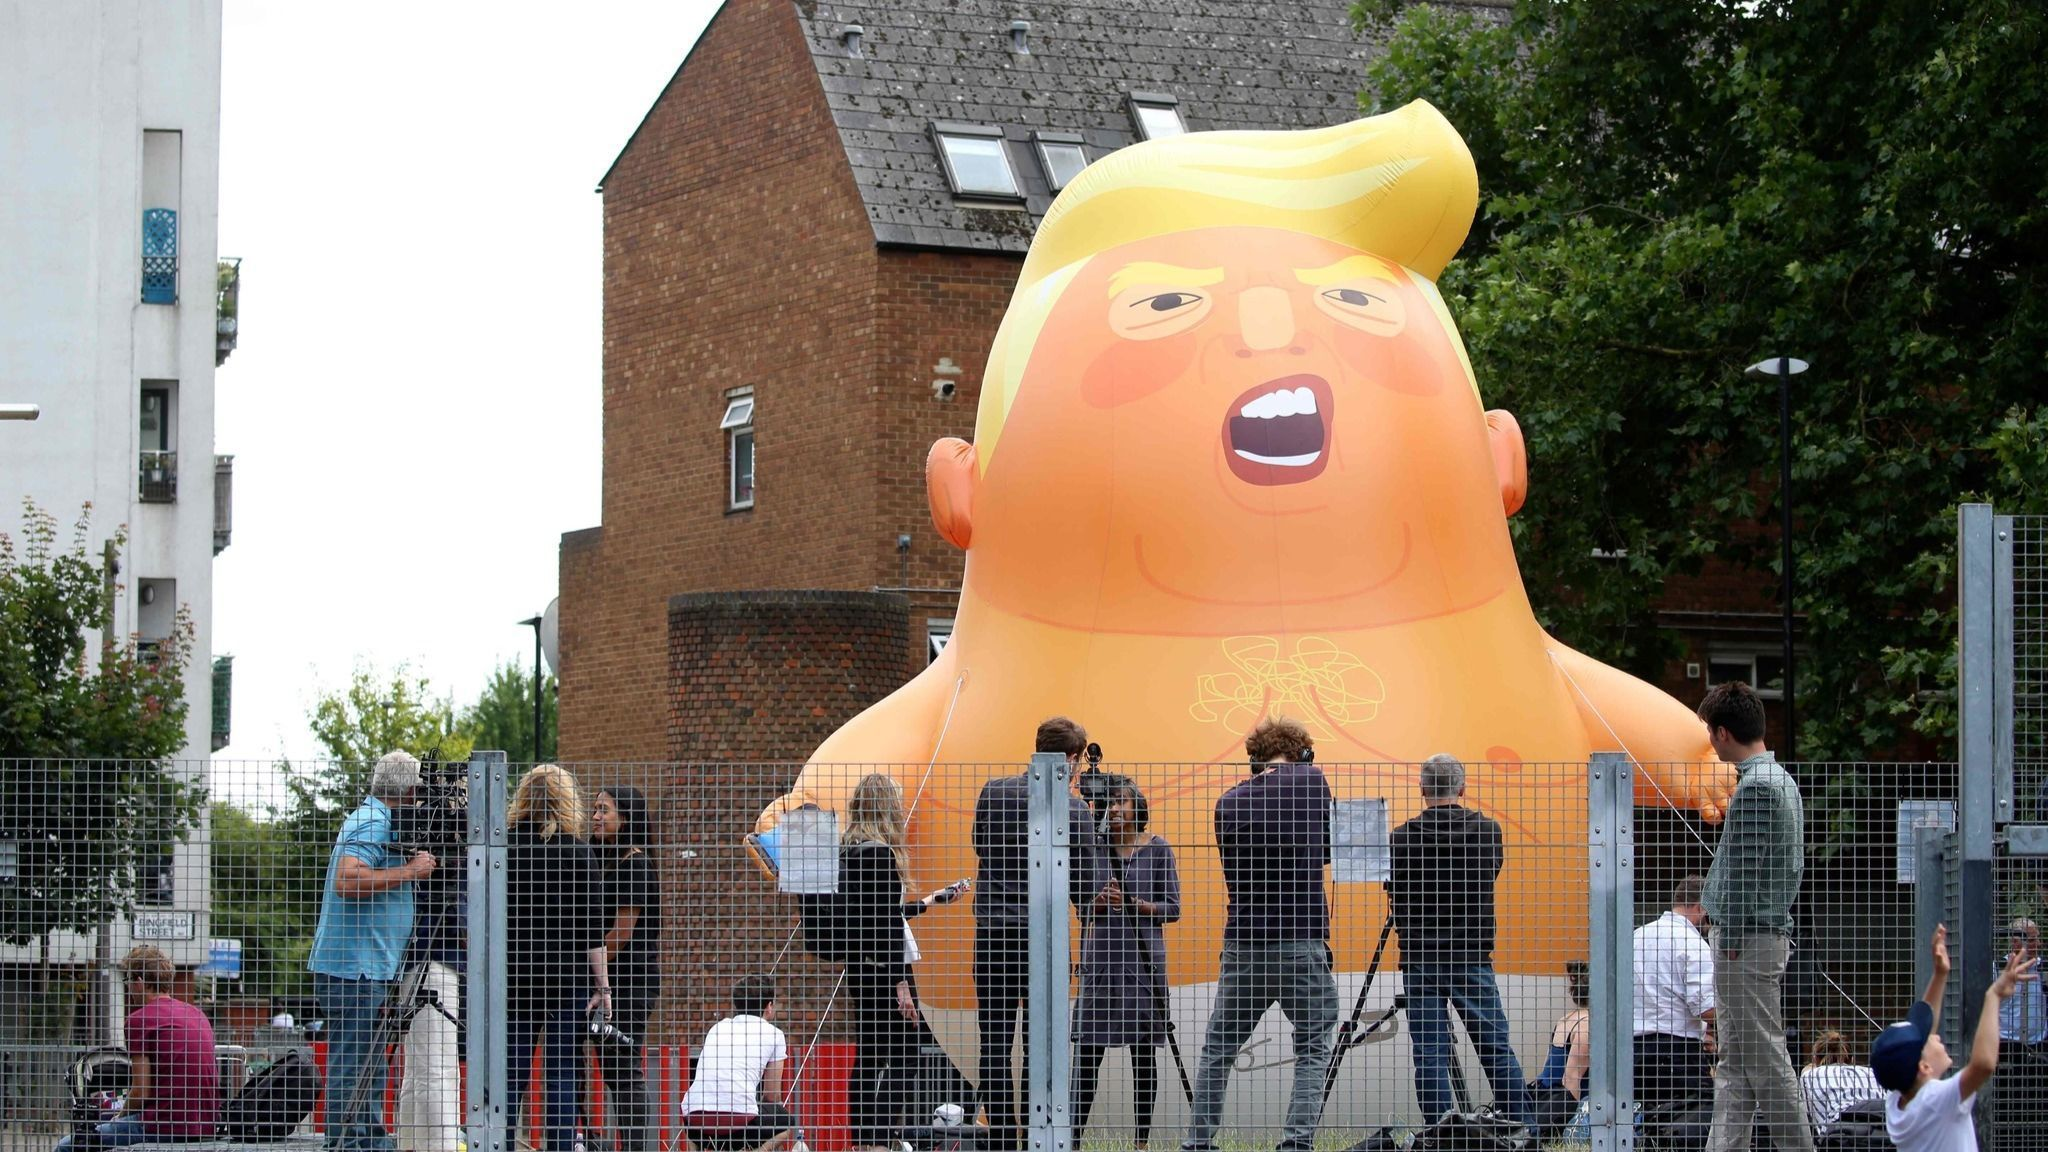 When Trump visits Britain, thousands of demonstrators plan to show him some resistance